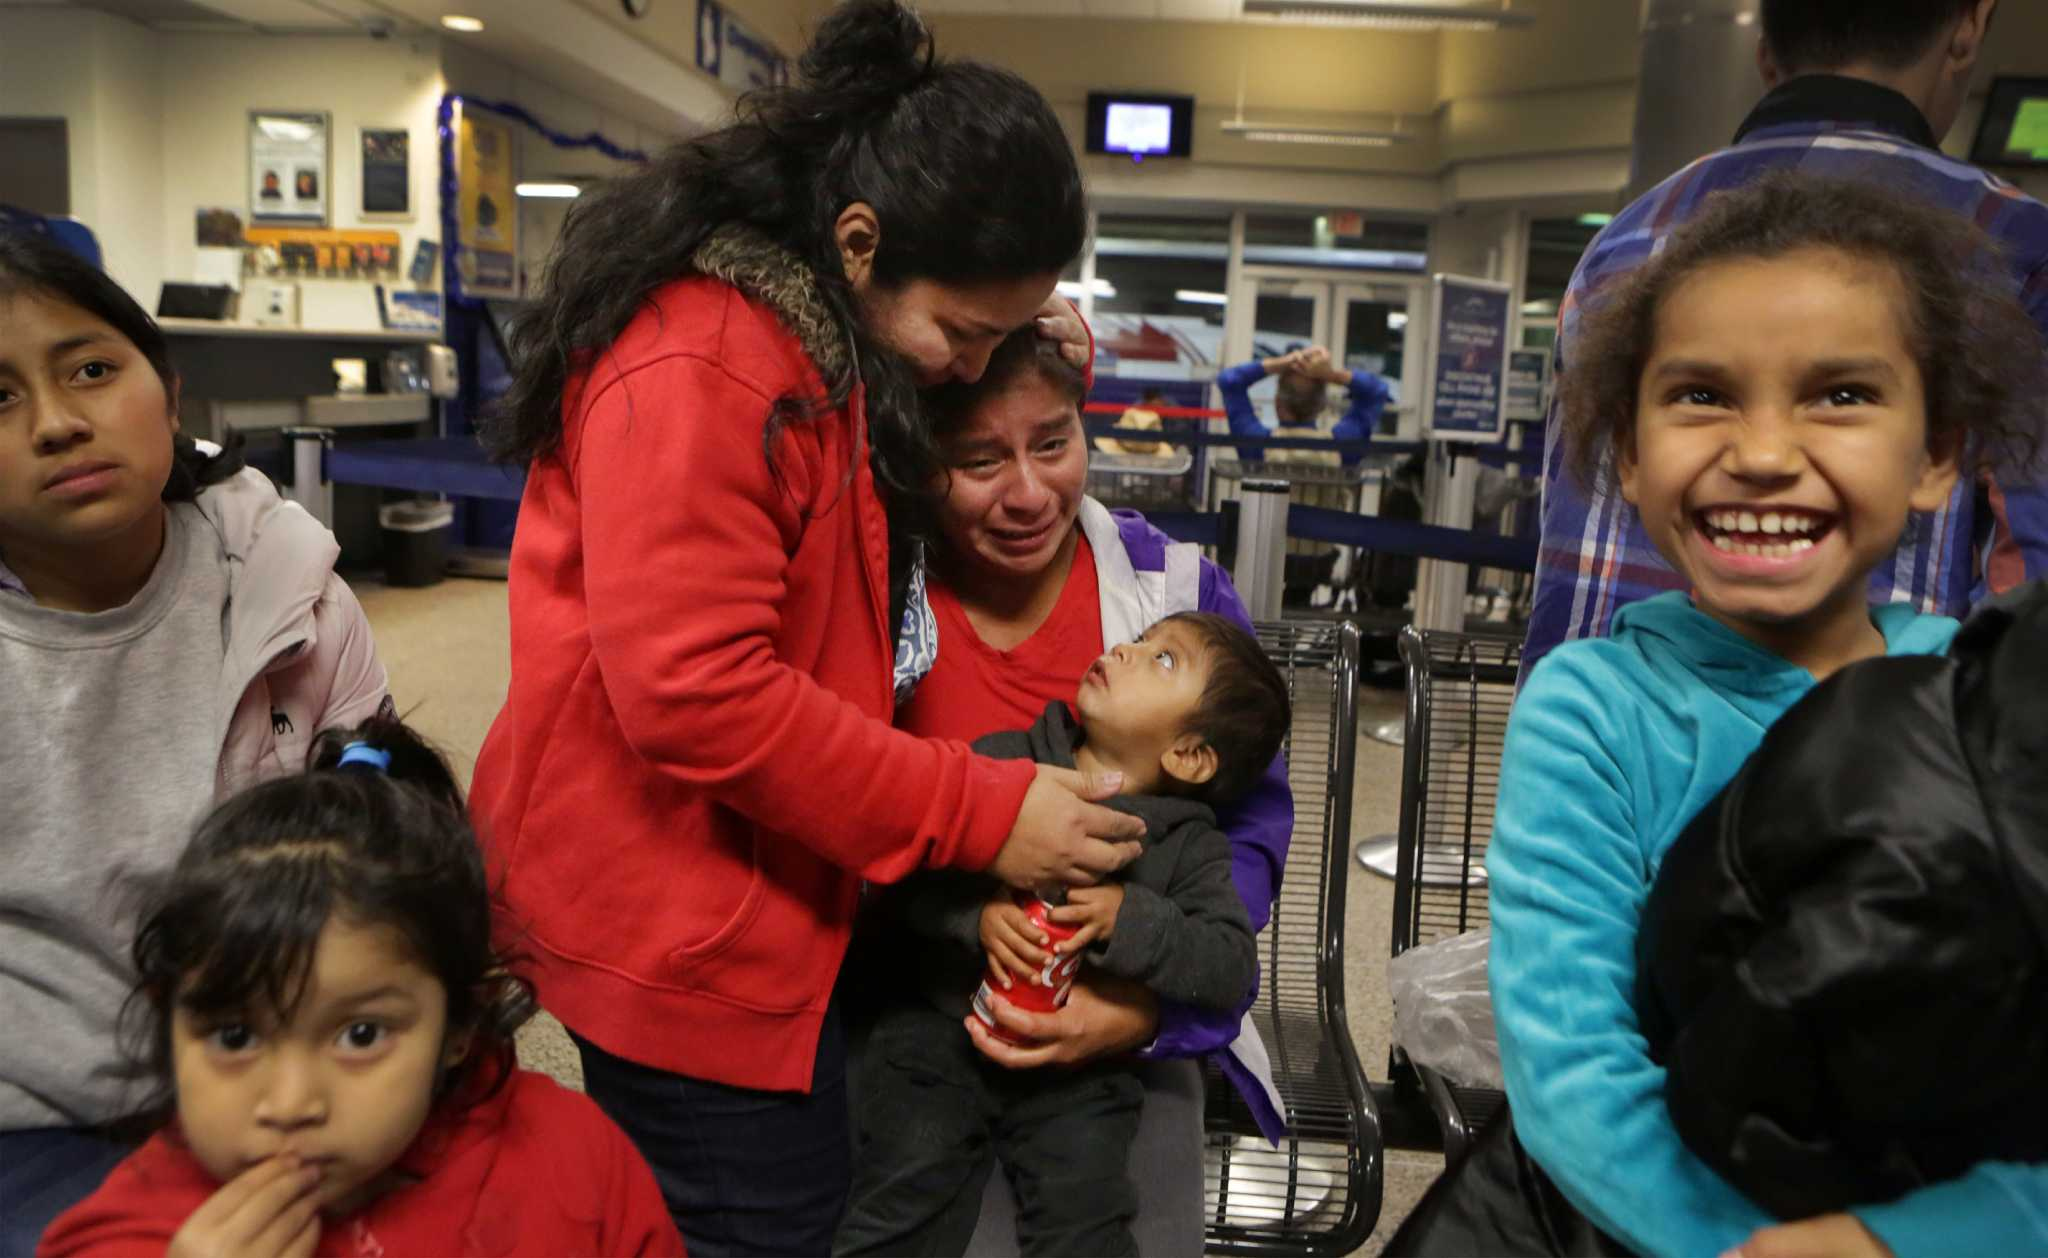 immigration agents take child from mom - HD2048×1258